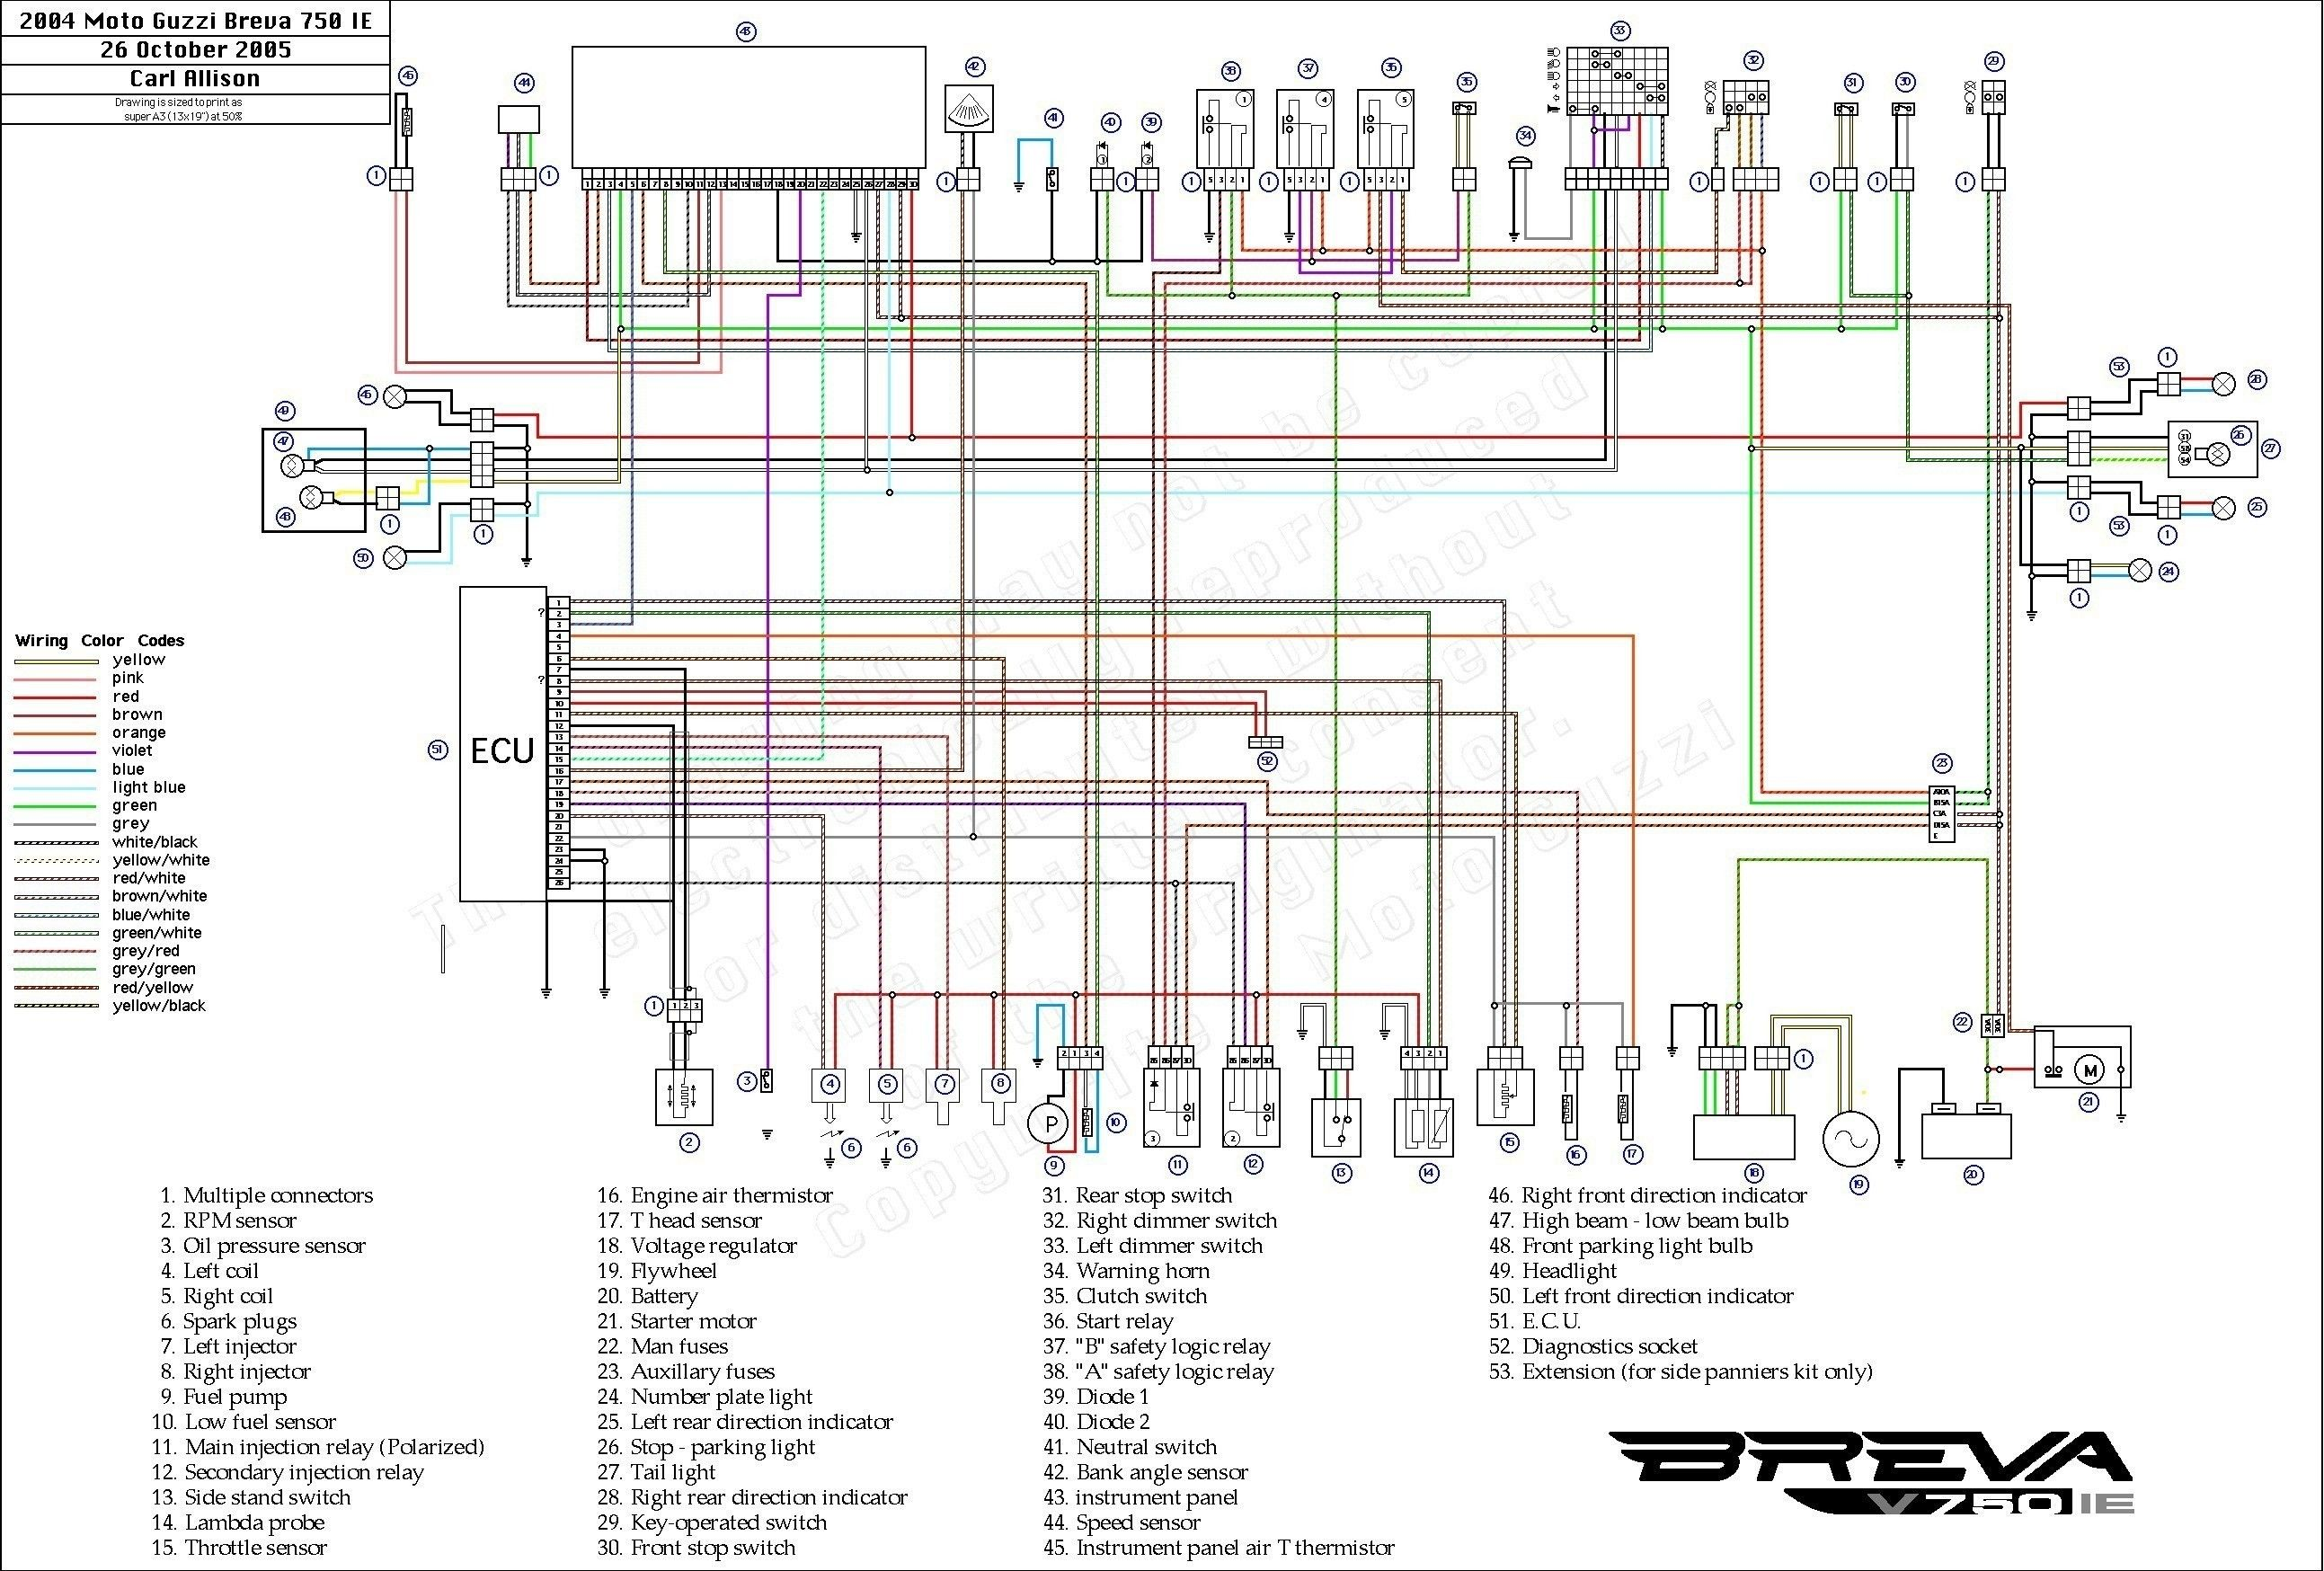 ignition wiring diagram 2004 dodge ram - wiring diagram base style-a -  style-a.jabstudio.it  jab studio